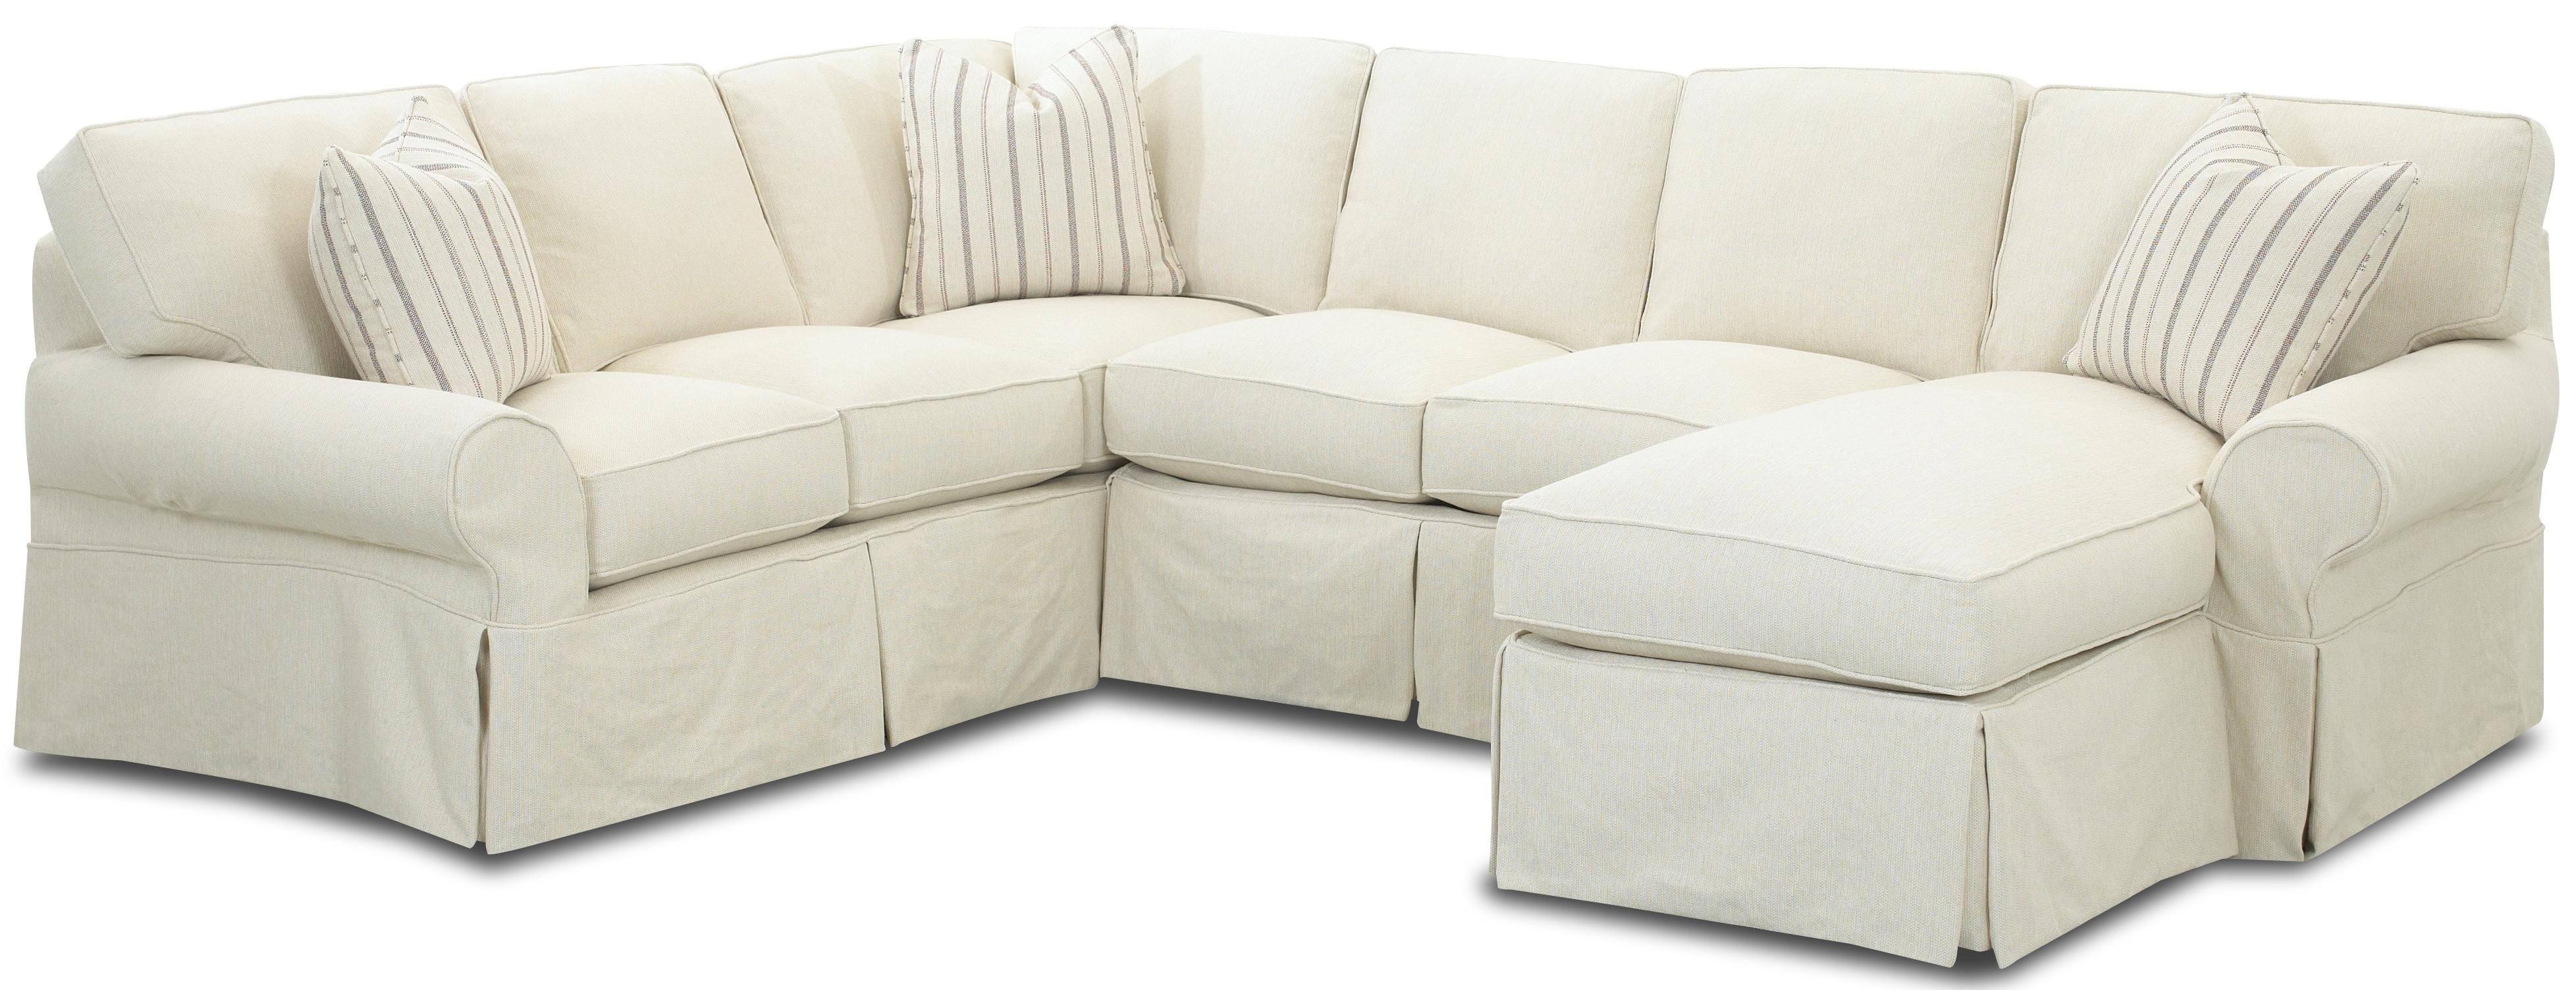 Klaussner Patterns Slipcovered Sectional Sofa with Right Chaise